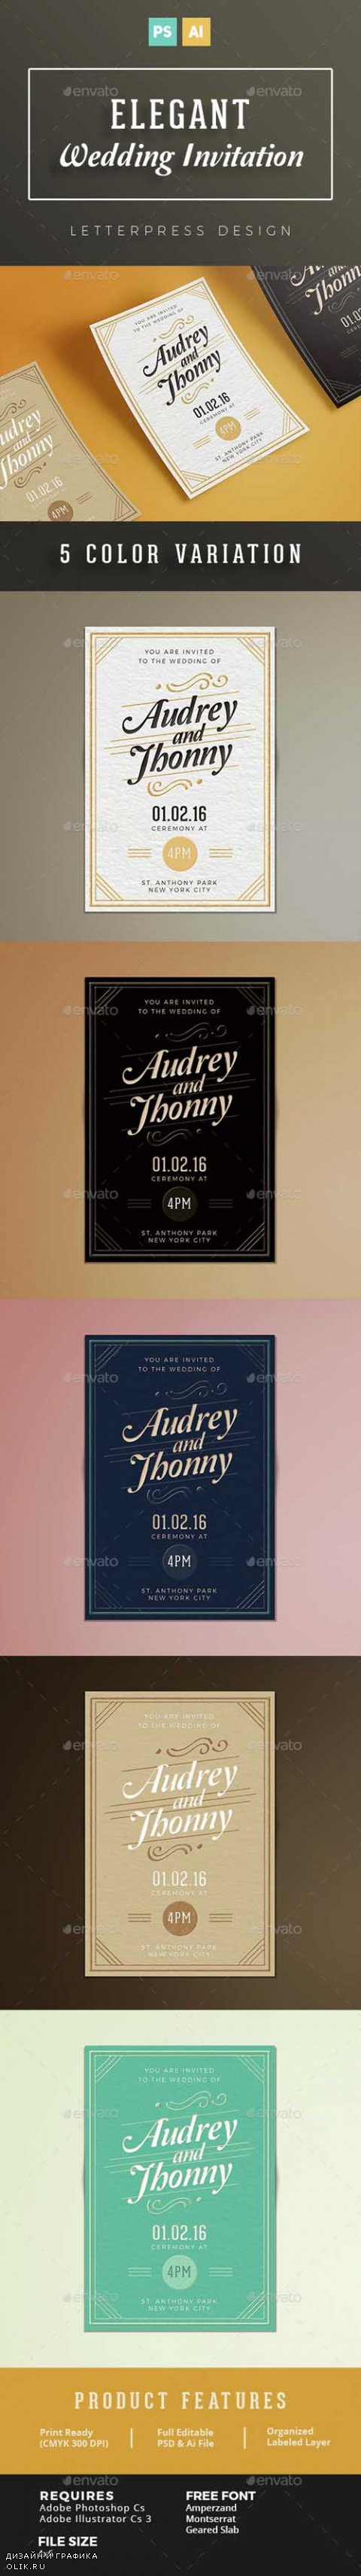 Elegant Wedding Invitation 14665983